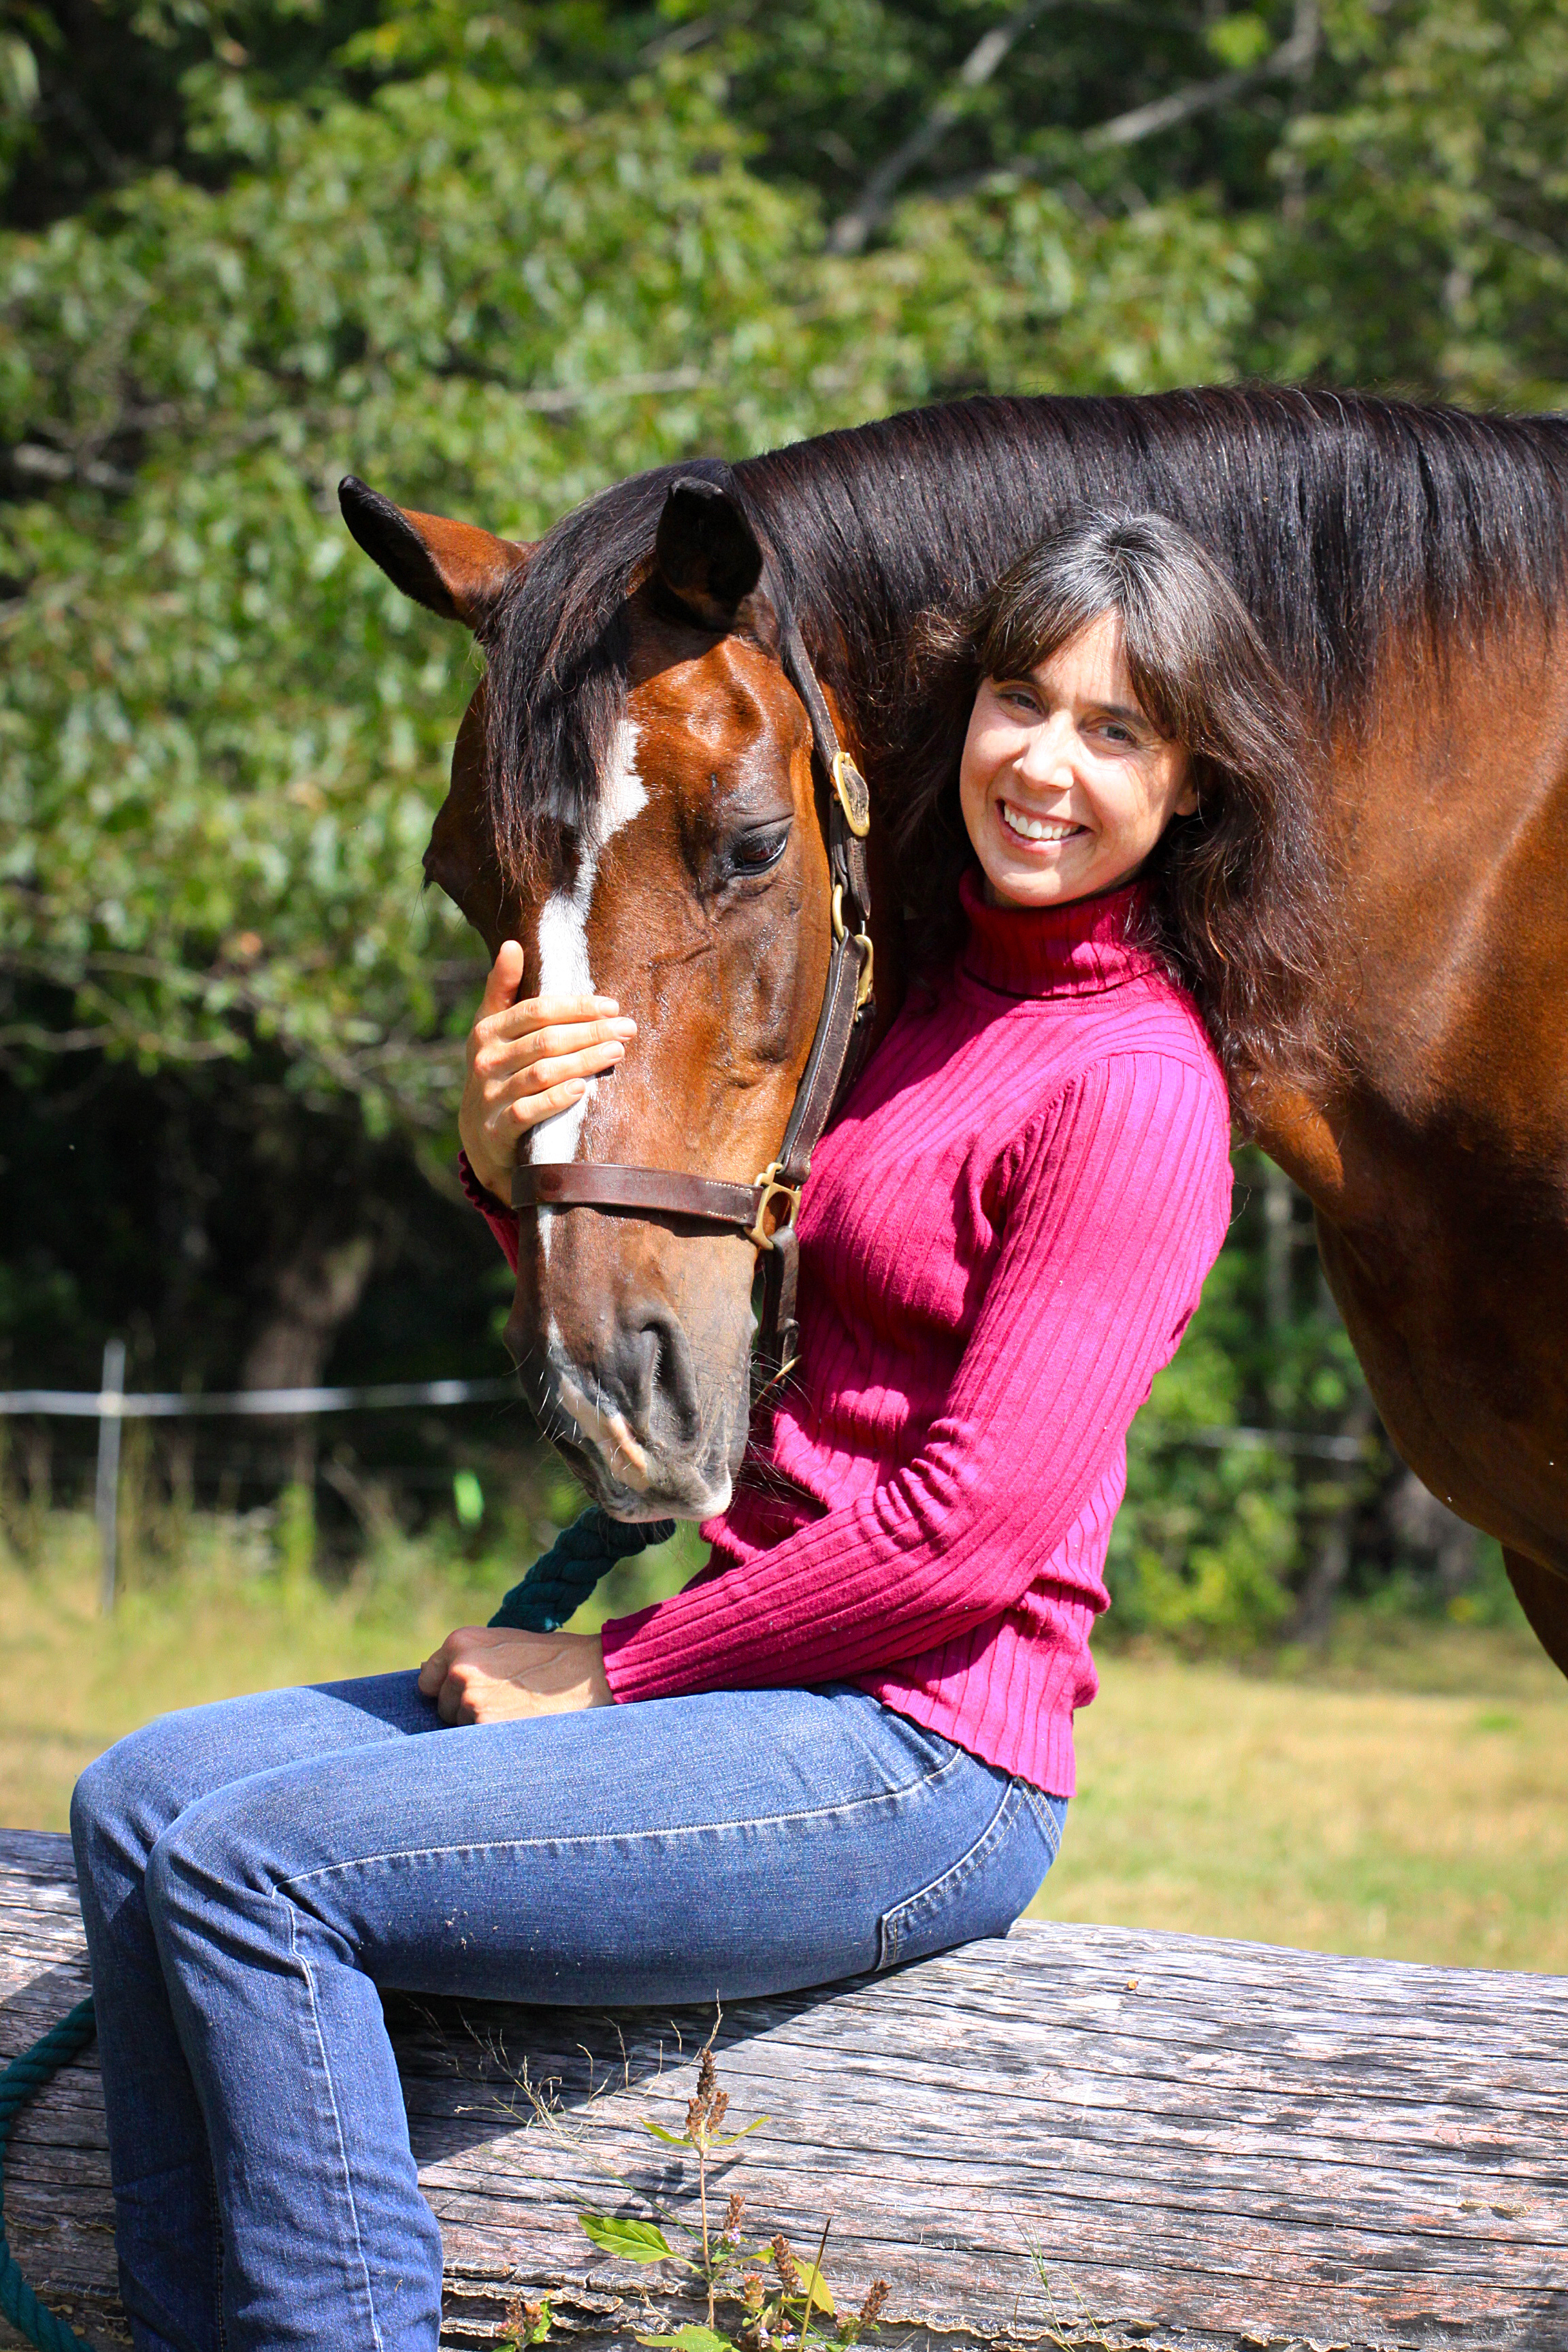 The equine factor: Why I do what I do